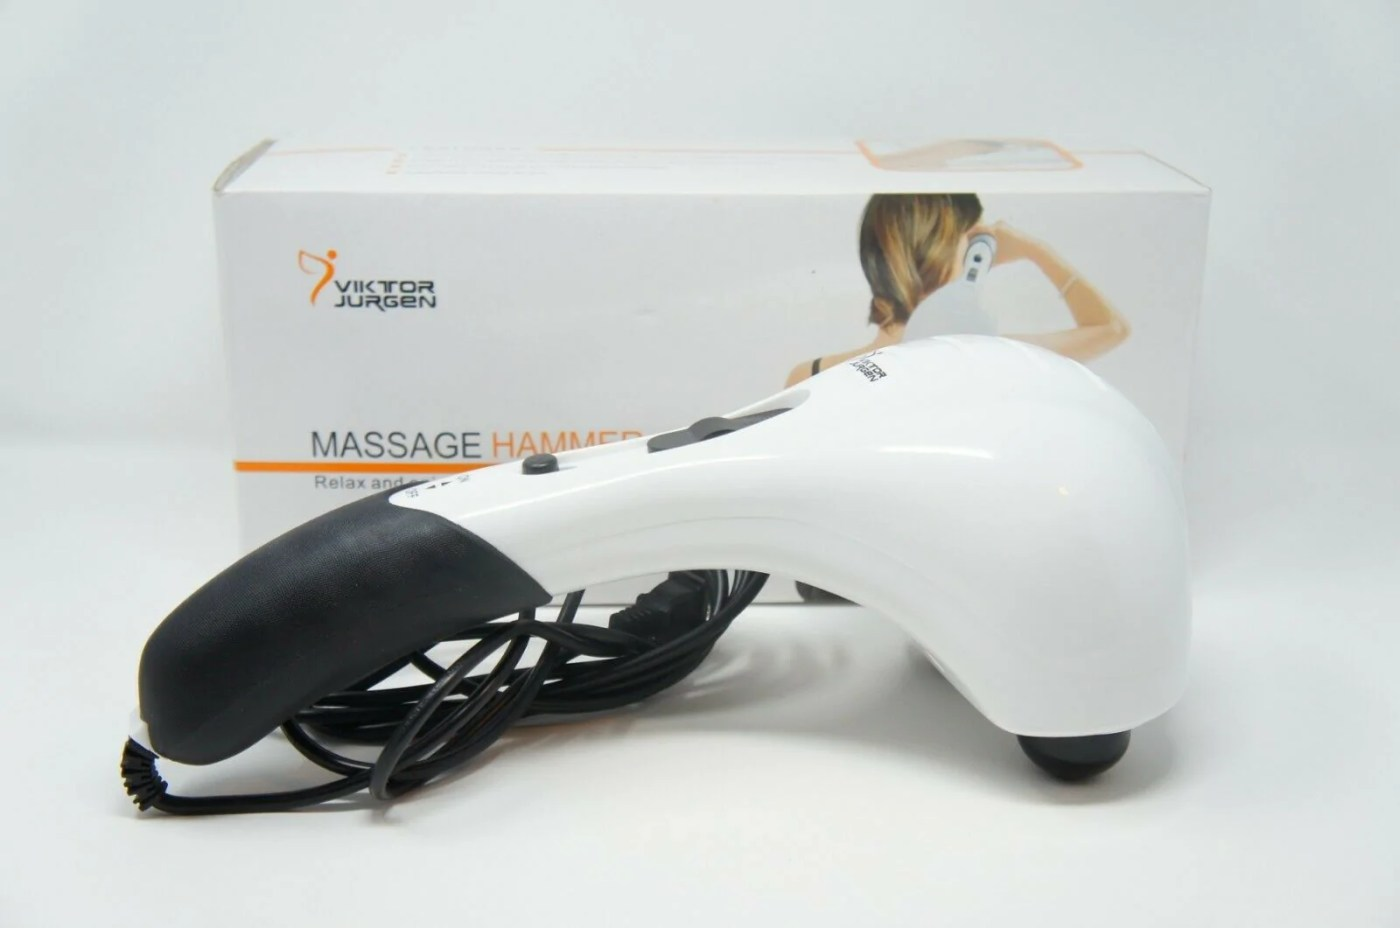 Image result for Viktor Jurgen Handheld Back Massager